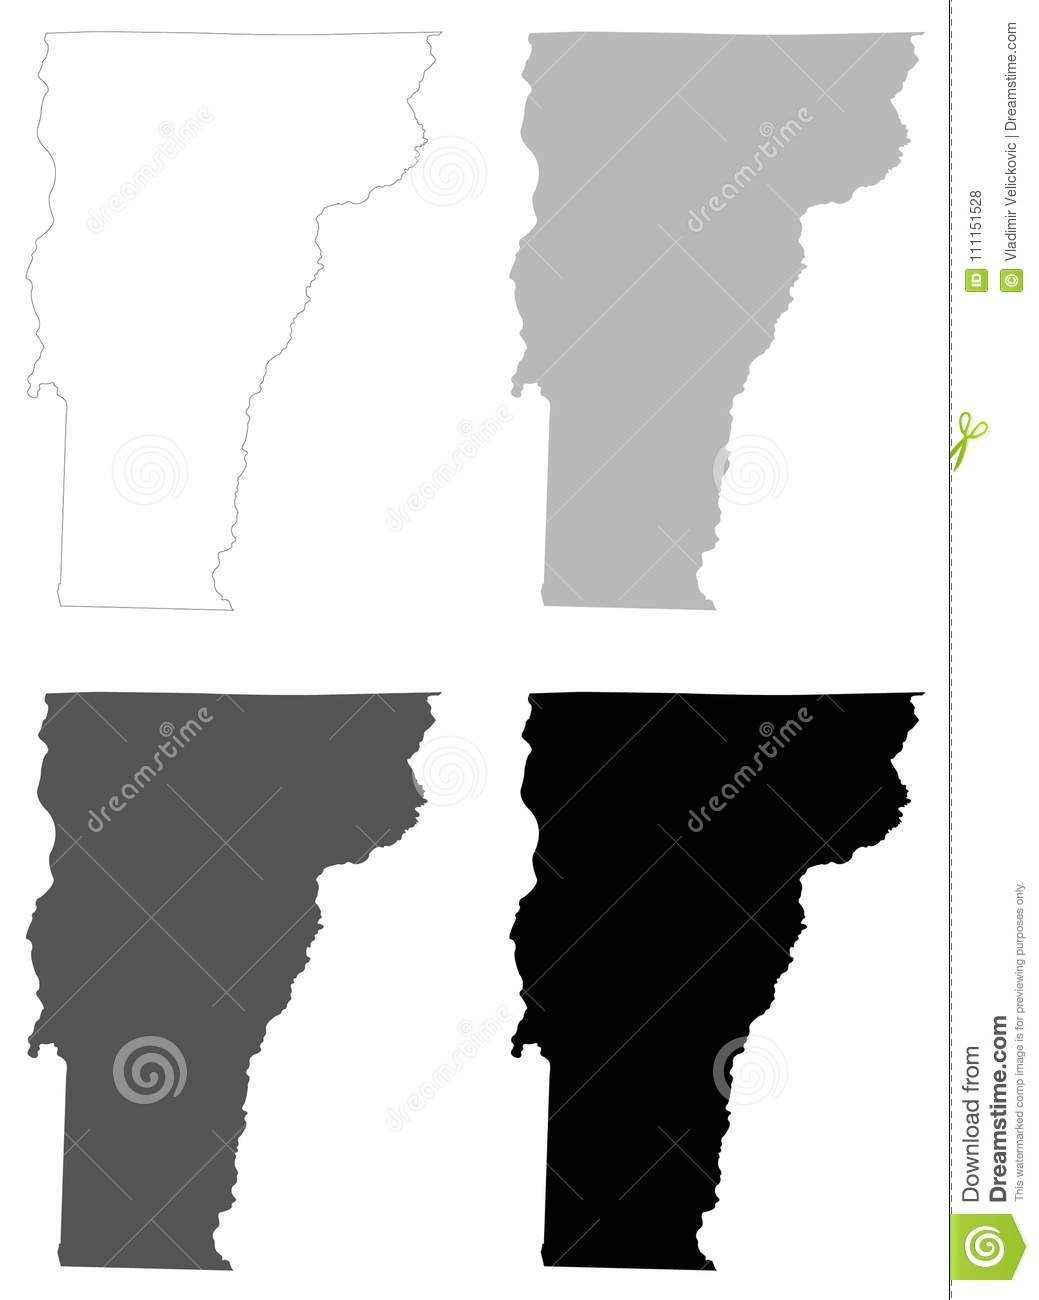 Vermont Map - State In The New England Region Of The ...